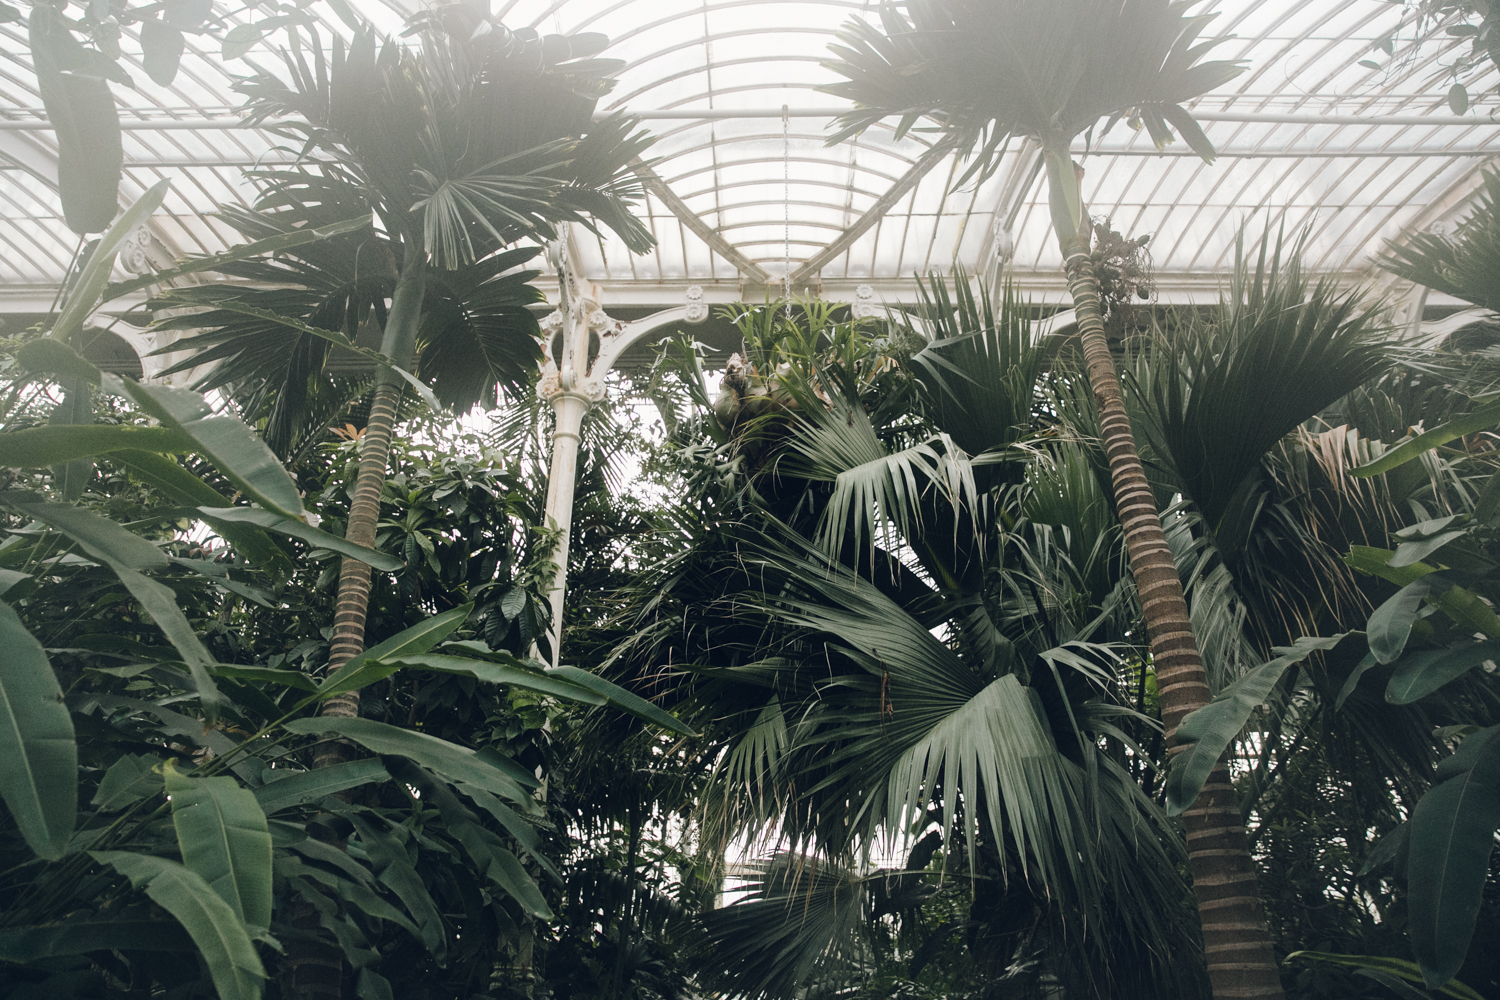 Haarkon Kew Gardens Palmhouse Palm Temperate Glasshouse Greenhouse Plants Greenery London Visit